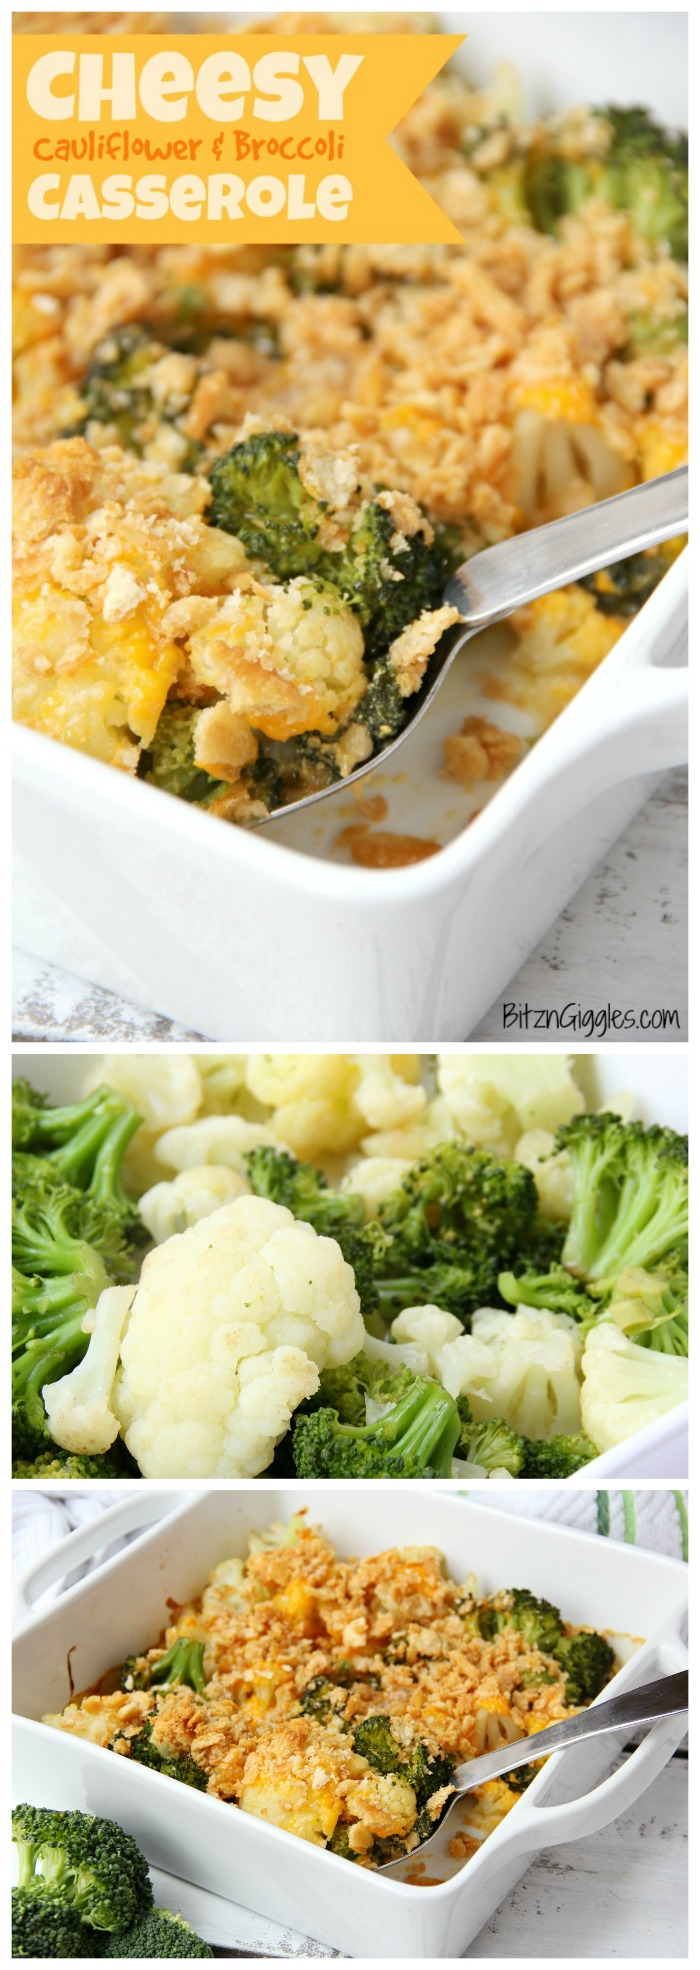 Cheesy Cauliflower and Broccoli Casserole - A cheesy cauliflower and broccoli casserole with buttery and golden Ritz cracker crumbs sprinkled over the top.